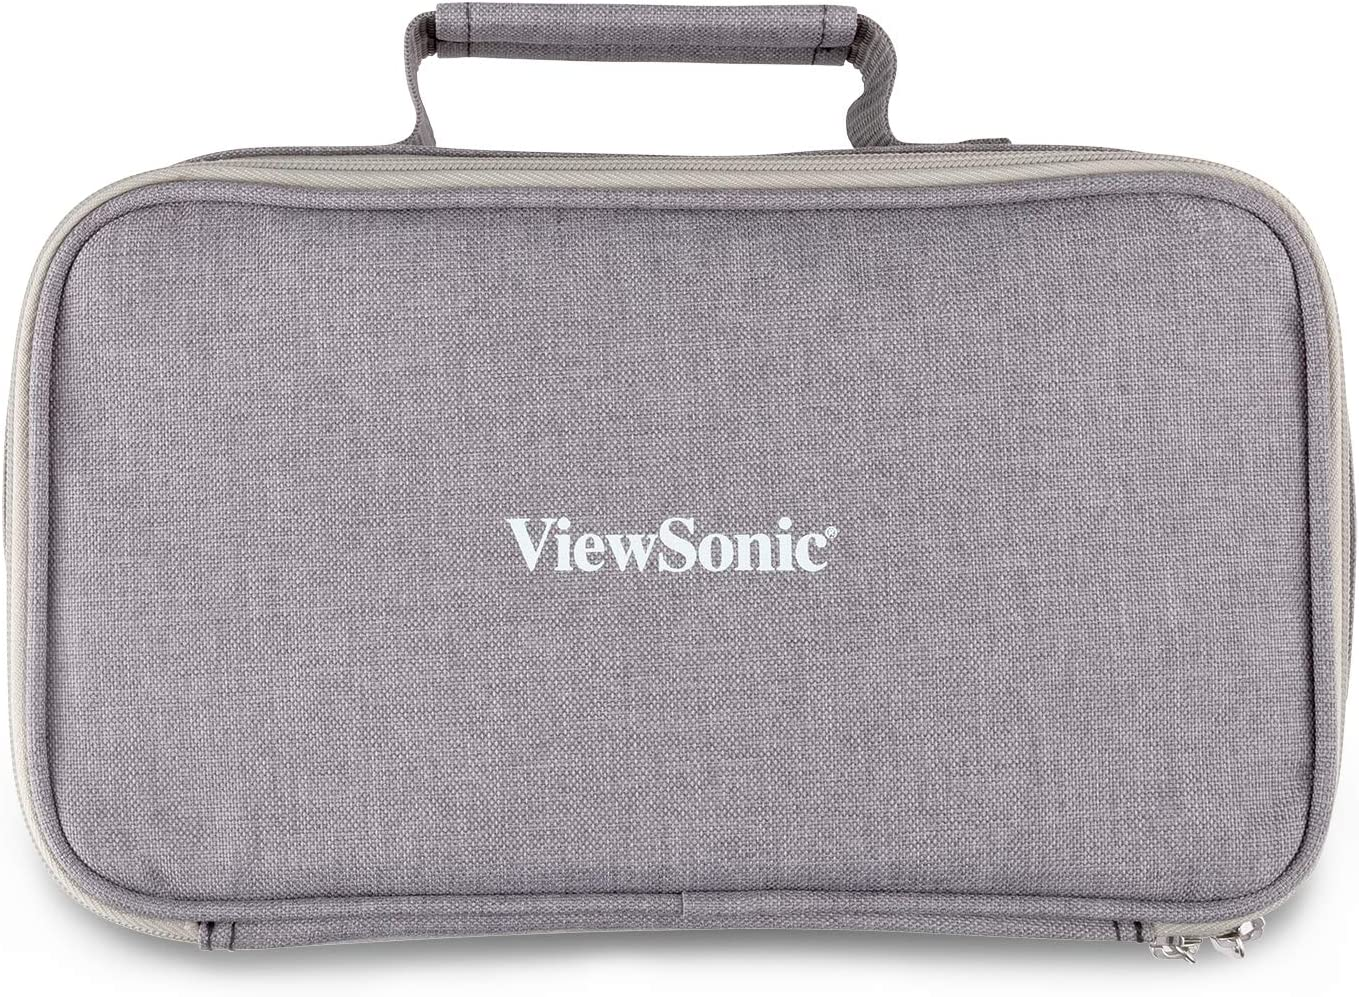 ViewSonic PJ-CASE-010 Zipped Soft Padded Carrying Case for M1 Projector Gray: Electronics